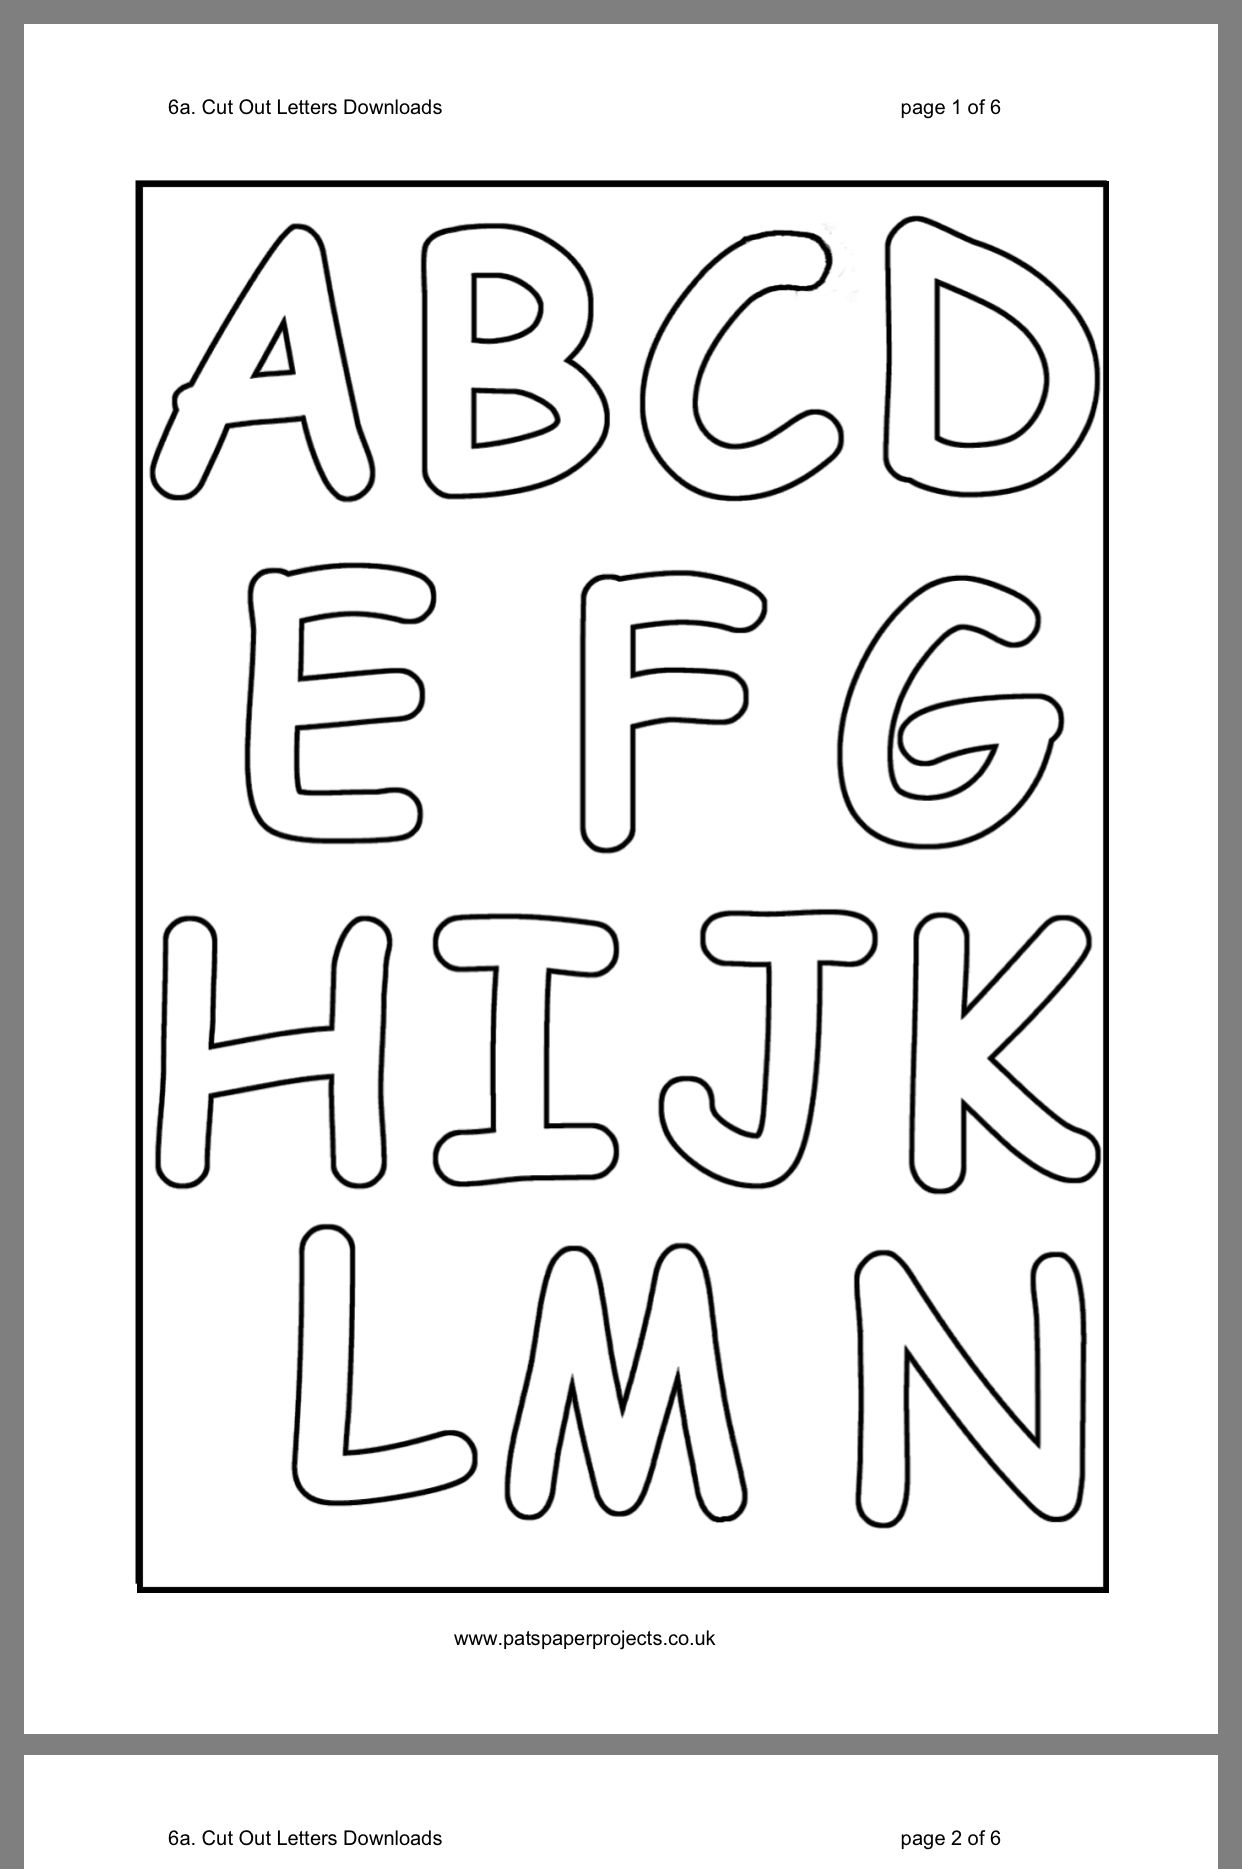 Printable Cut Out Letters Alphabet That Are Ridiculous